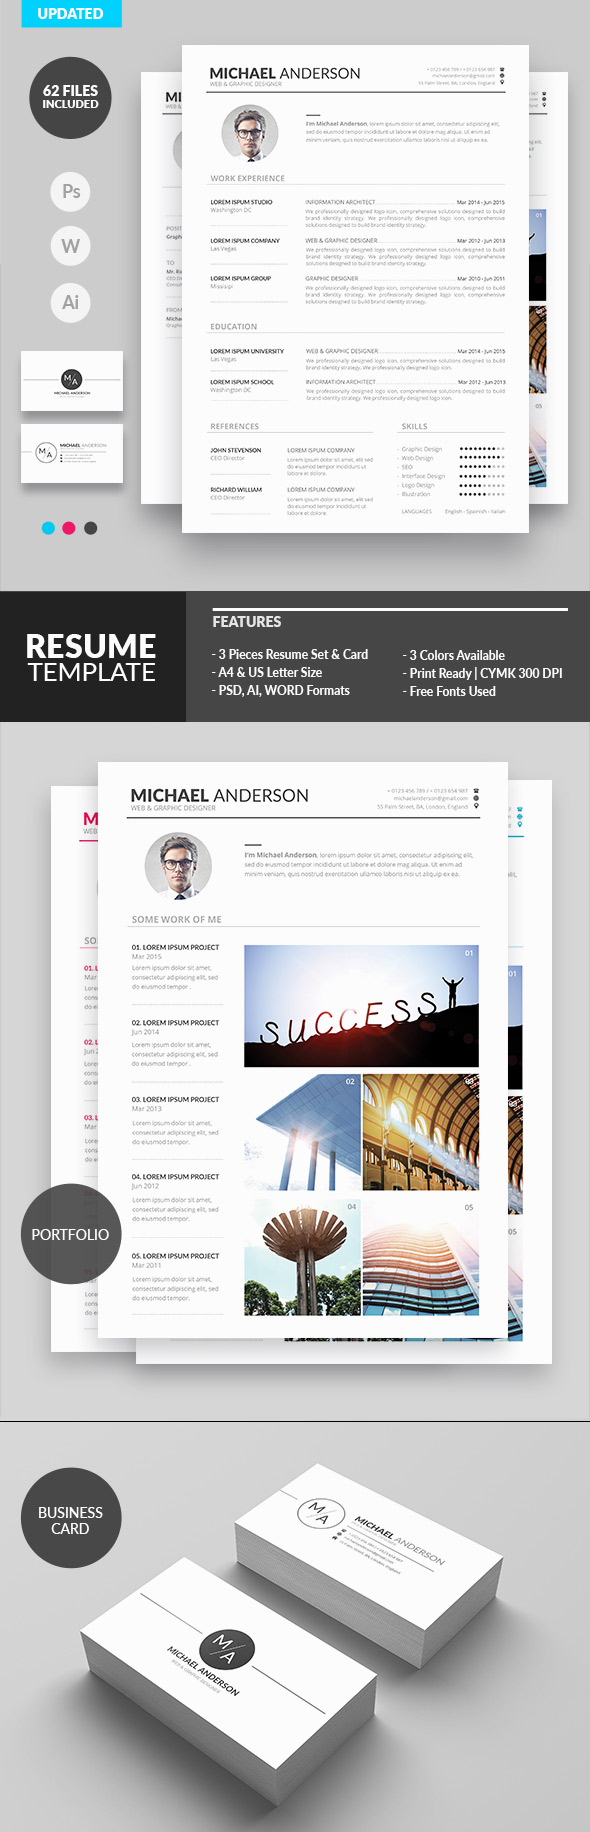 Minimal Resume Design for Creatives